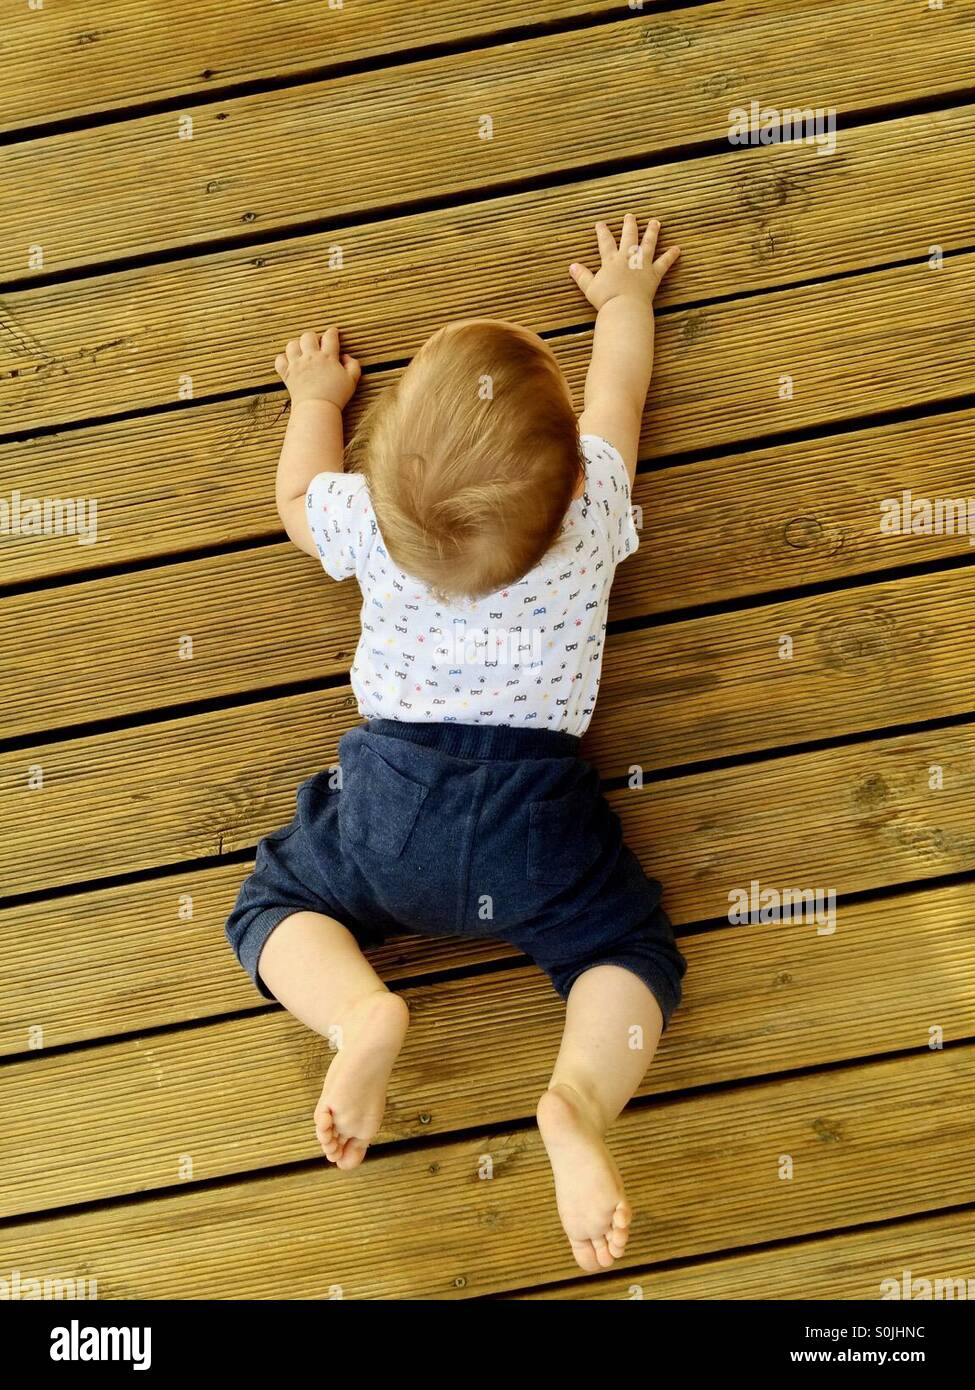 A view from the top of 8 month old baby boy trying to crawl on a wooden deck , outside at the backyard on a warm - Stock Image